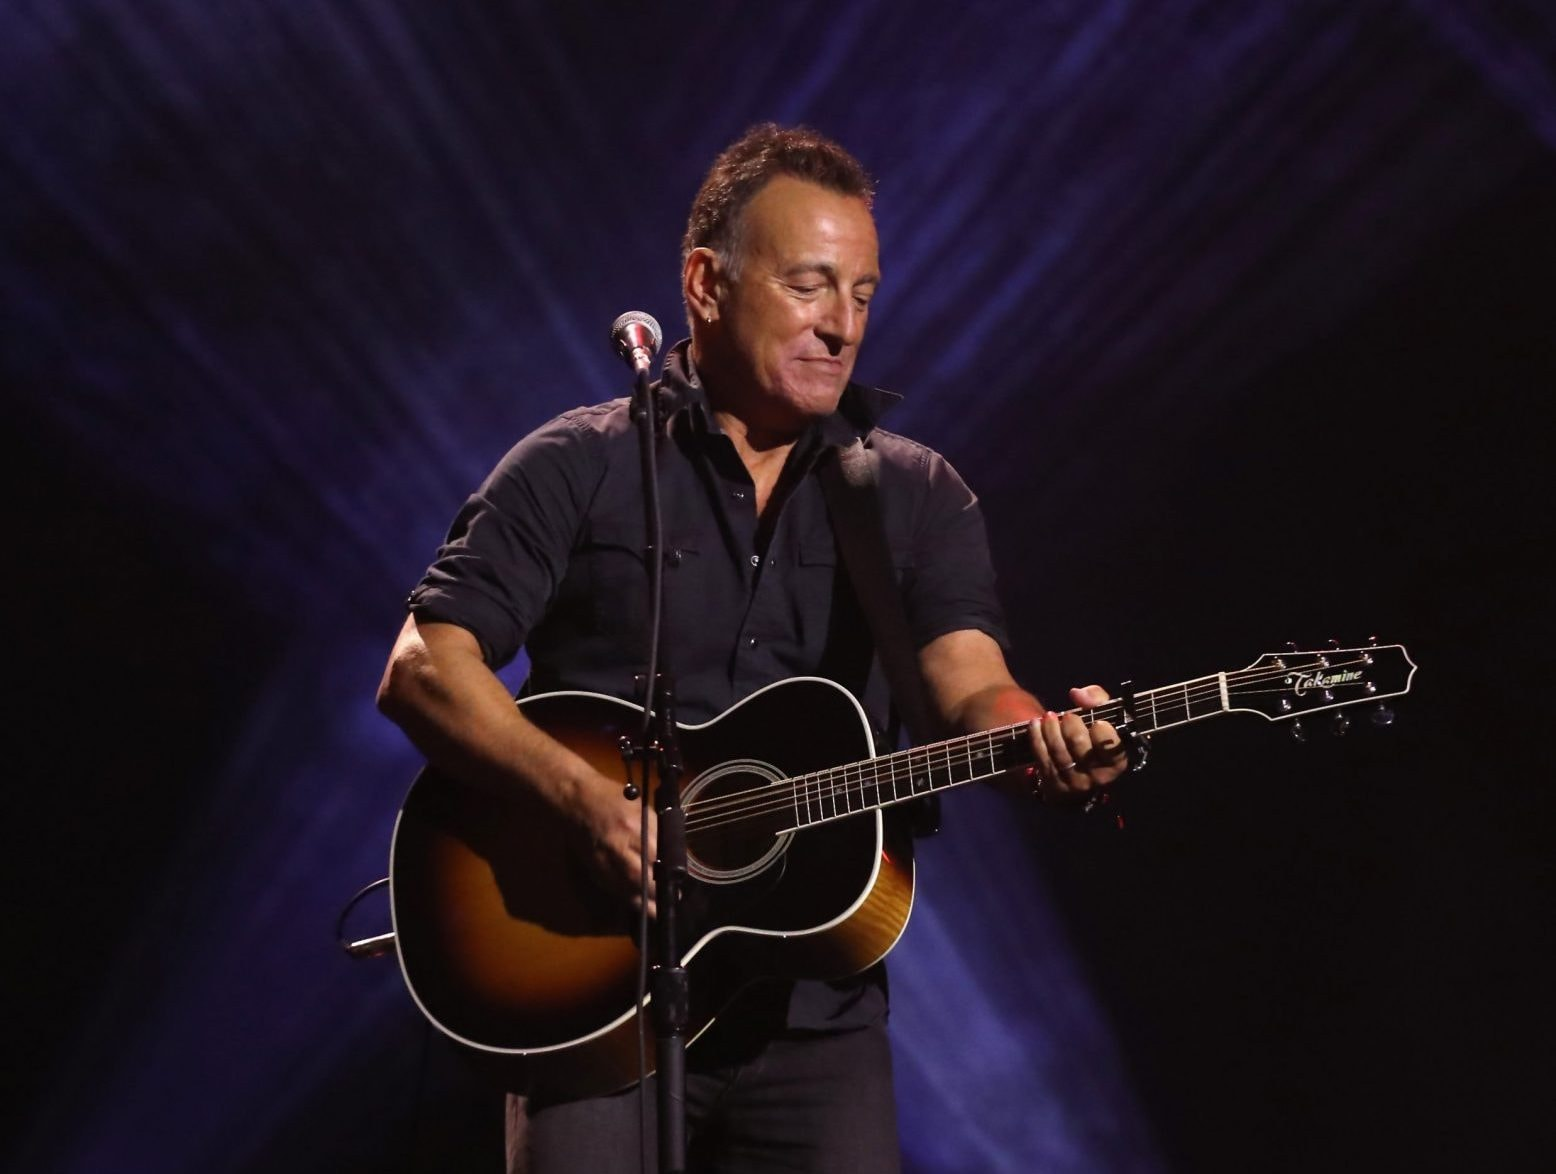 Bruce Springsteen Preview Of Performance Film To Play Before